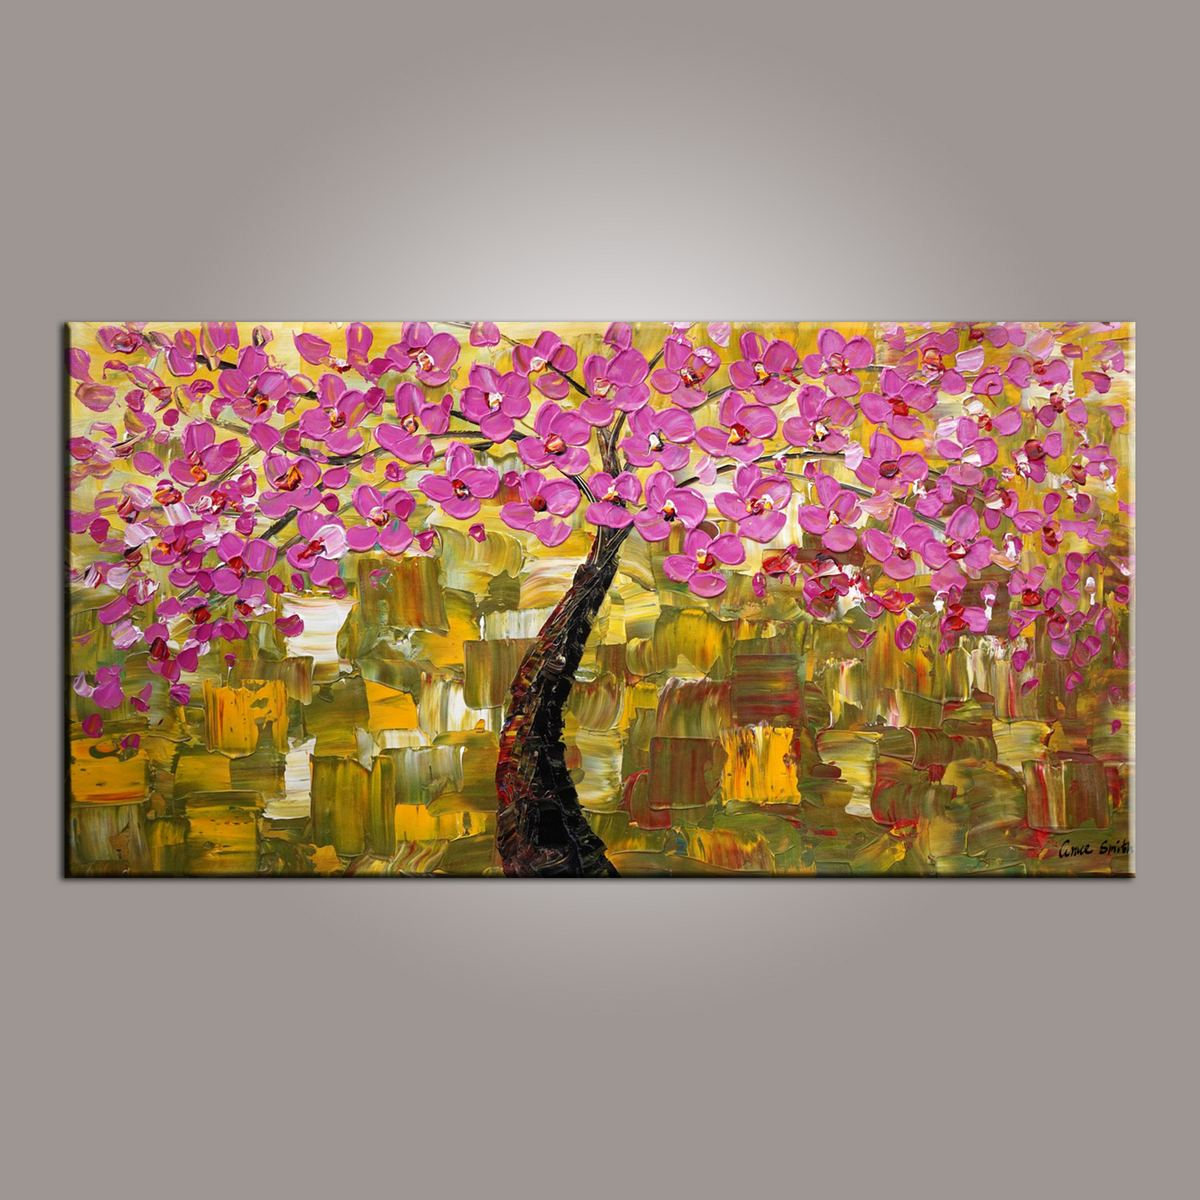 Flower Tree Painting, Canvas Art, Painting on Sale, Tree of Life Art Painting, Art on Canvas